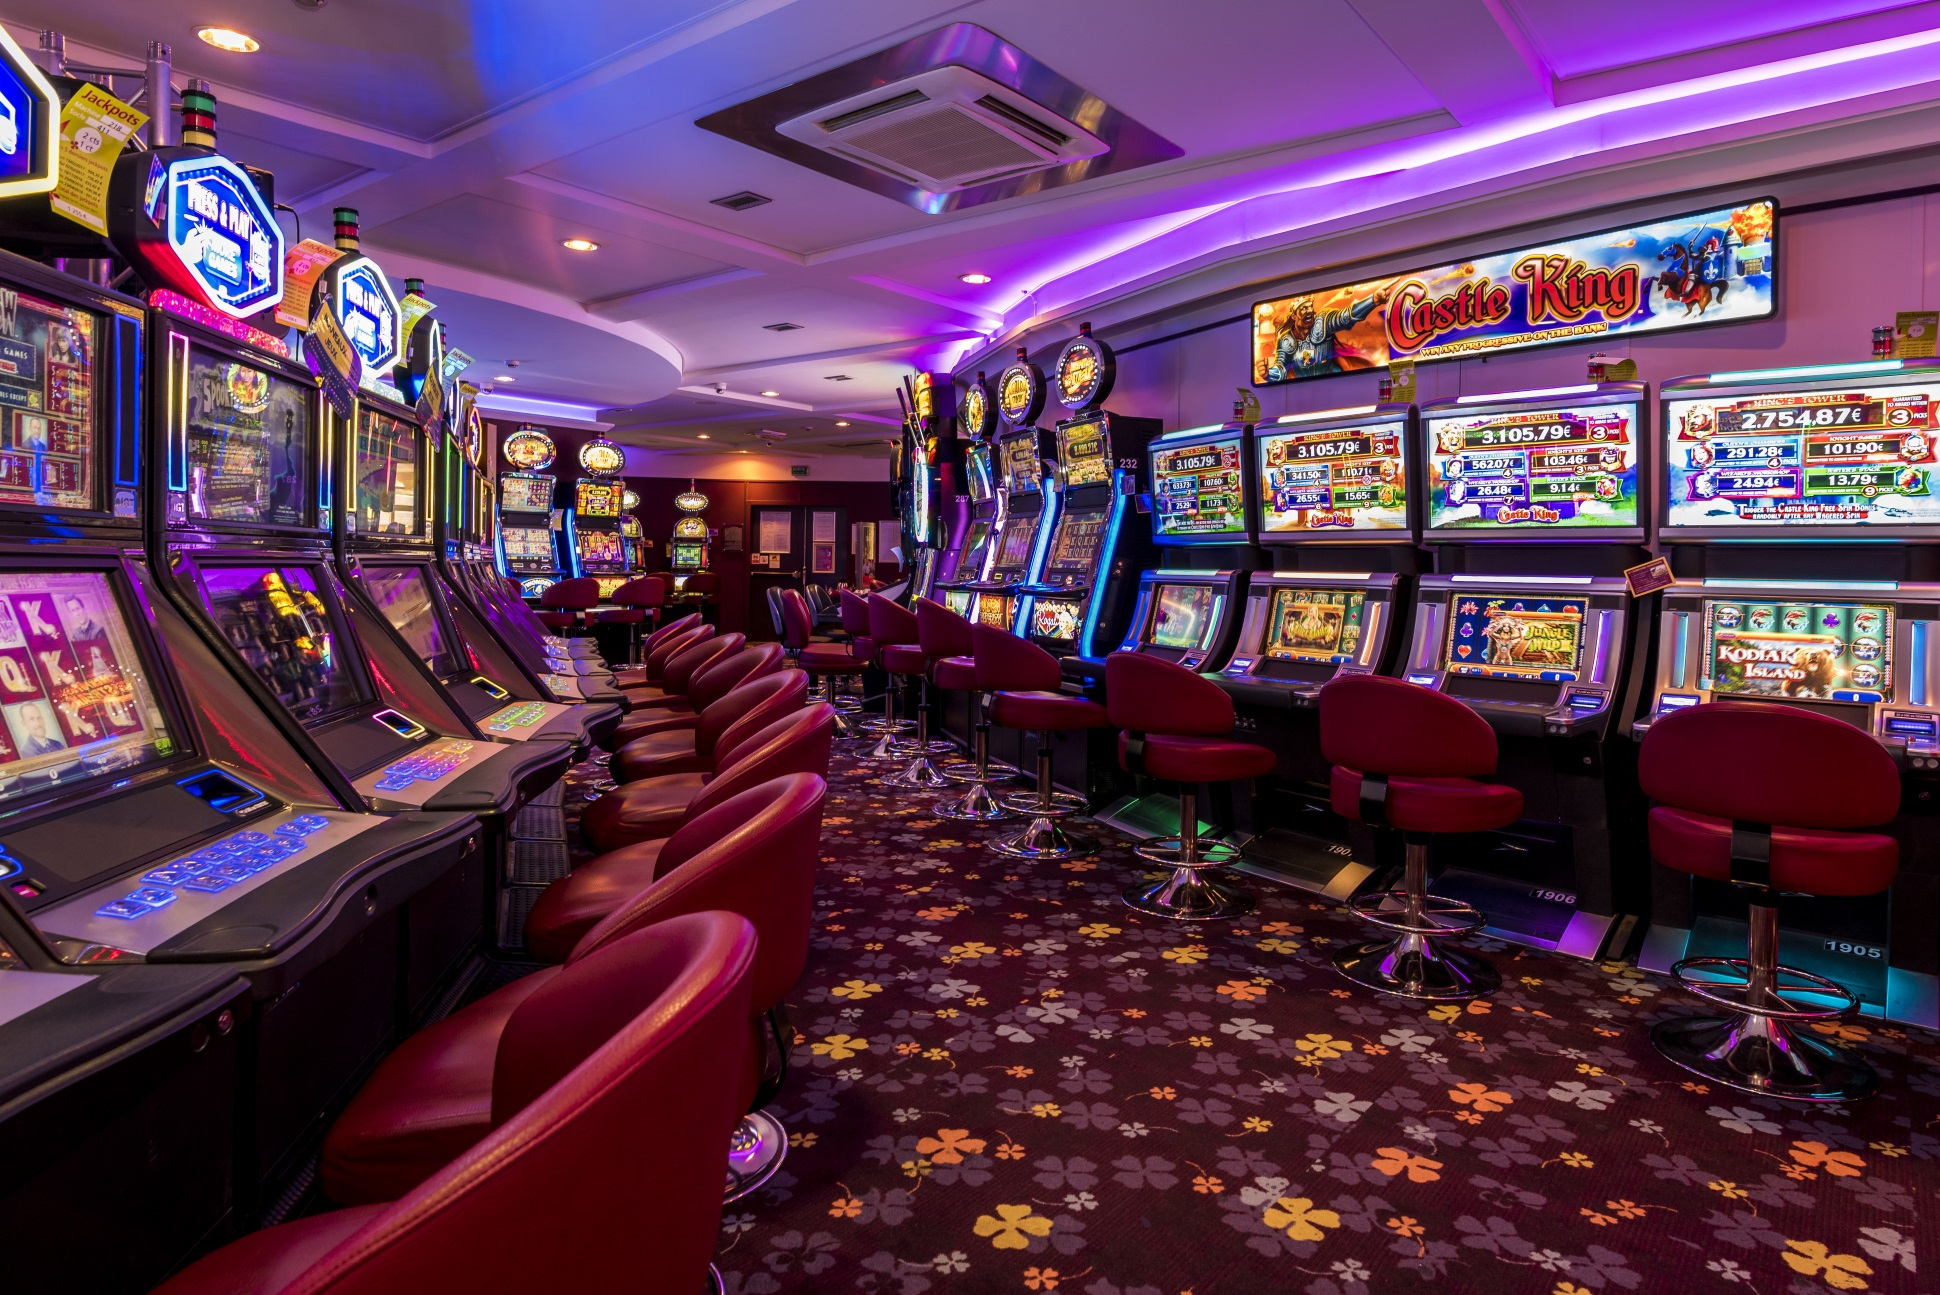 Things to Check Out Before Playing Online Slots Game